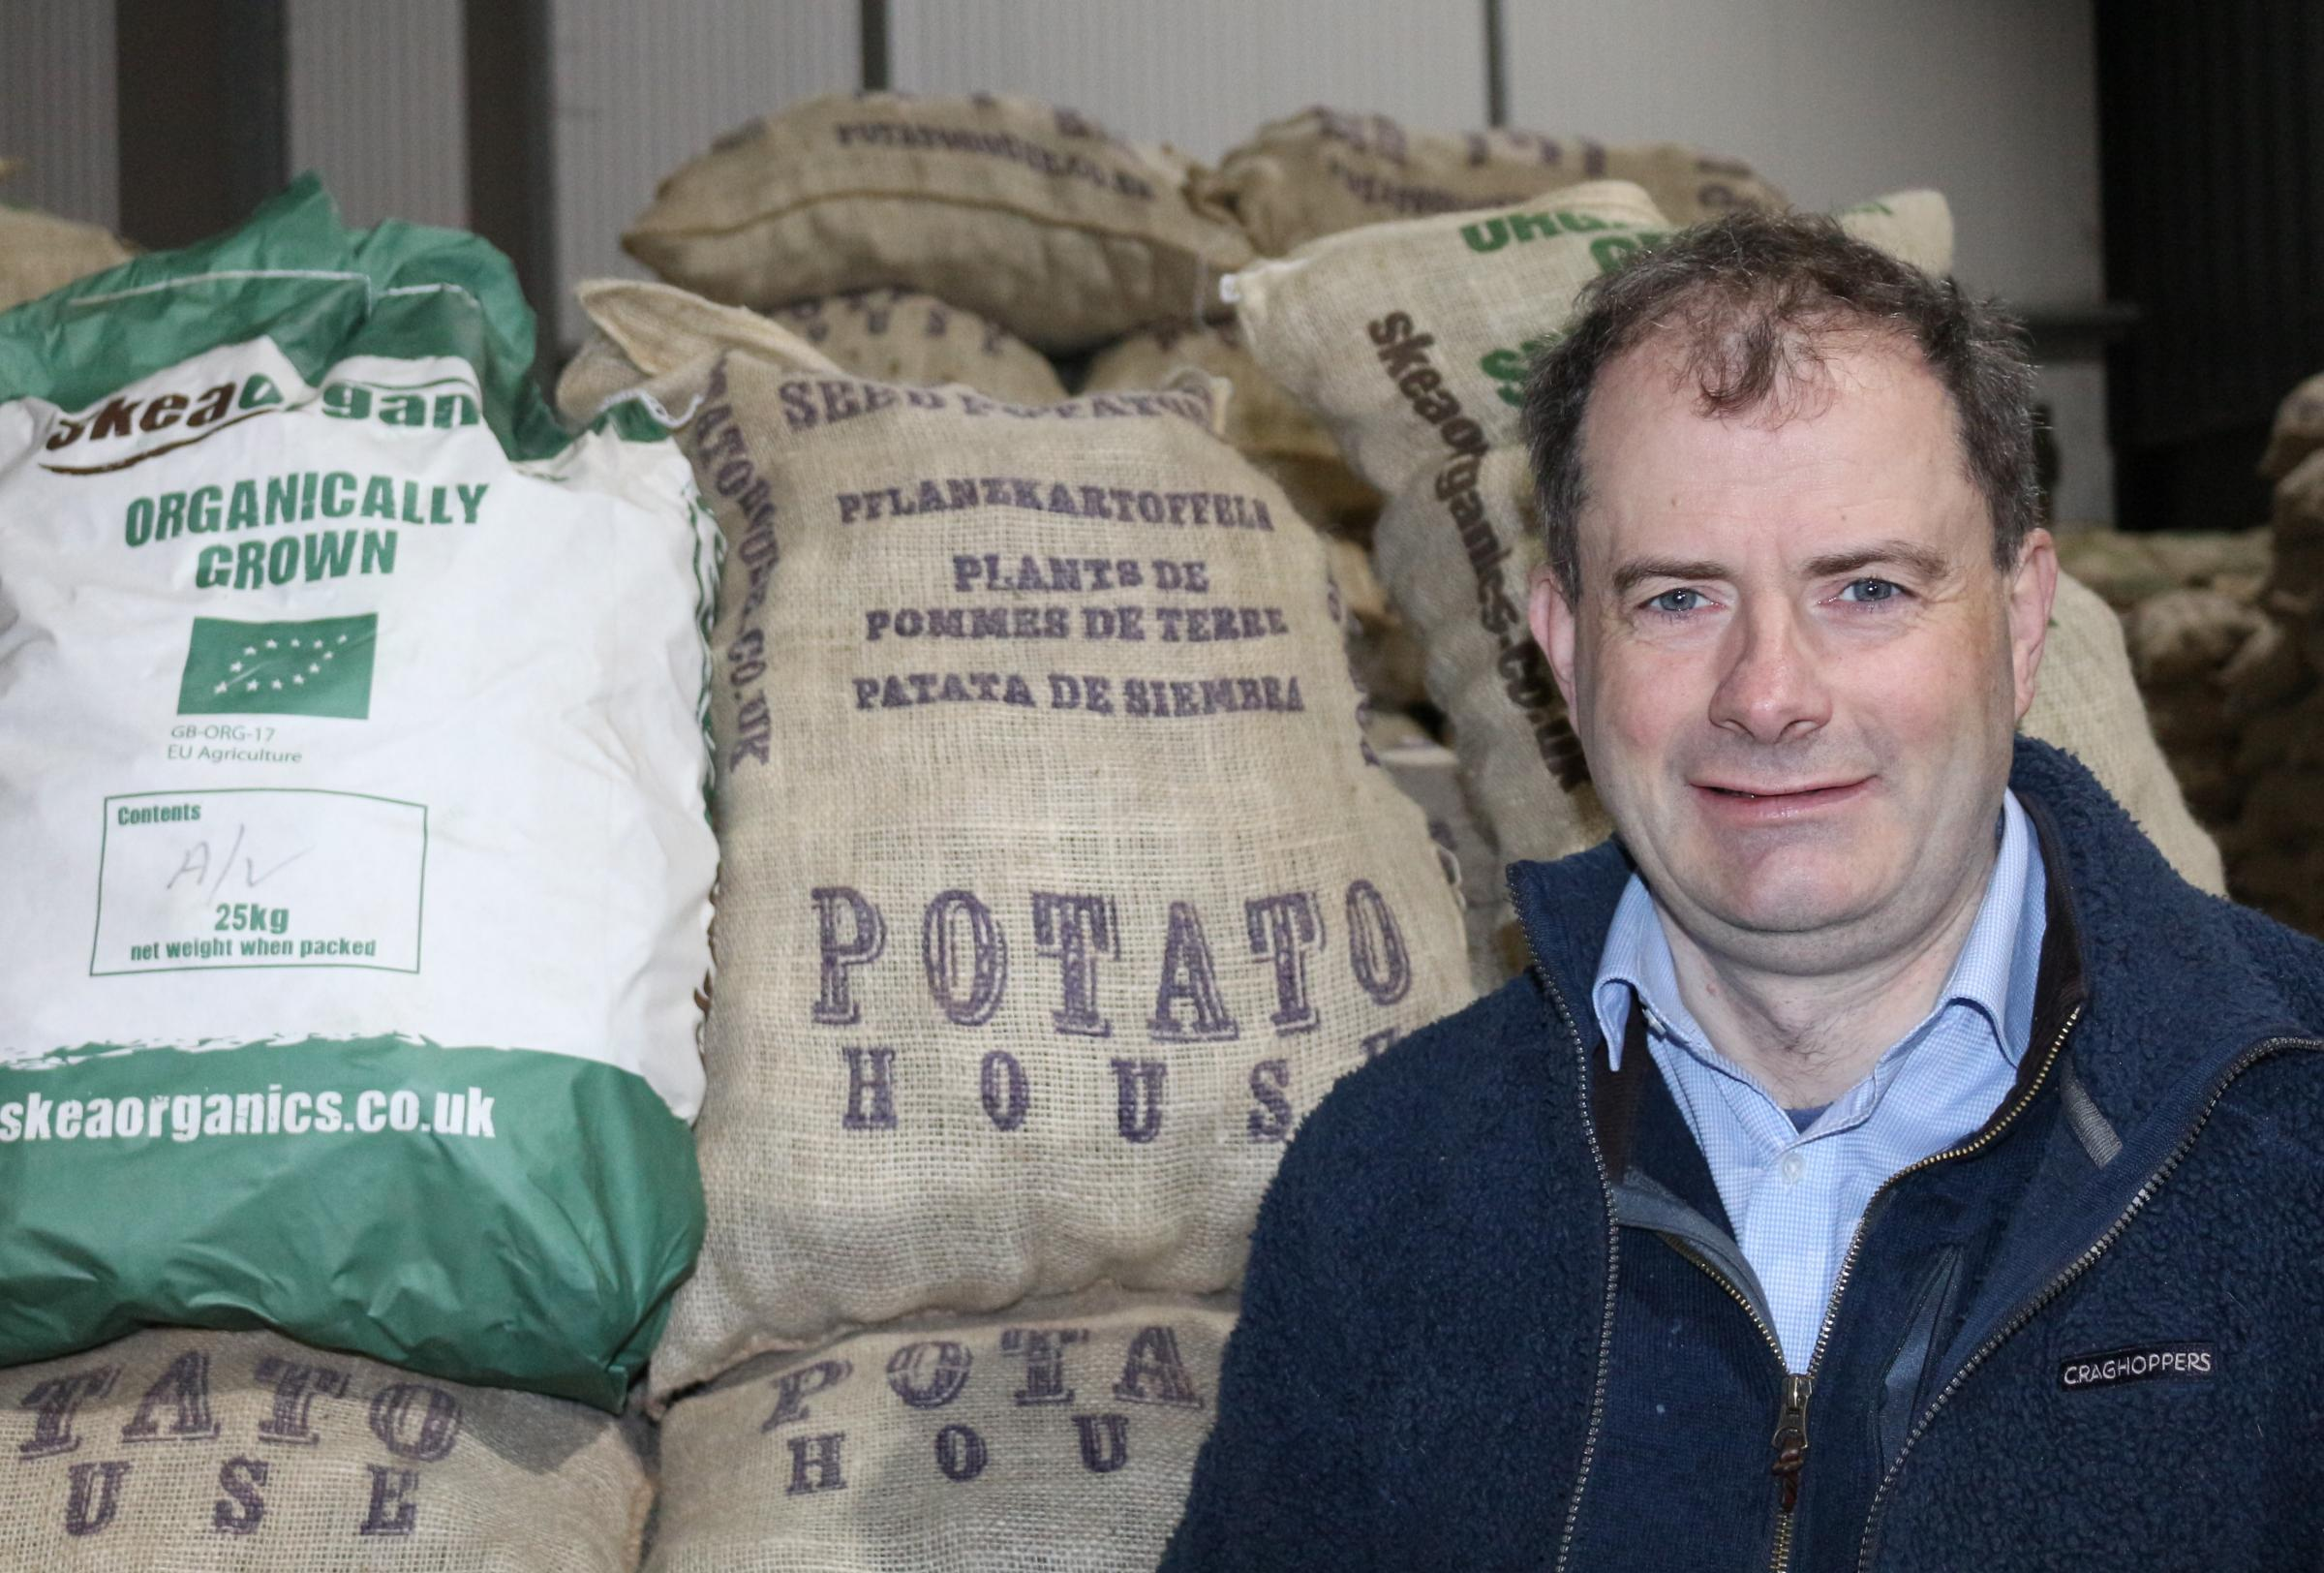 Andrew Skea has seen a lucrative trade in heritage potatoes to overseas buyers drop to zero because of Brexit, but hope the home market will pick up the shortfall for his business, the Potato House